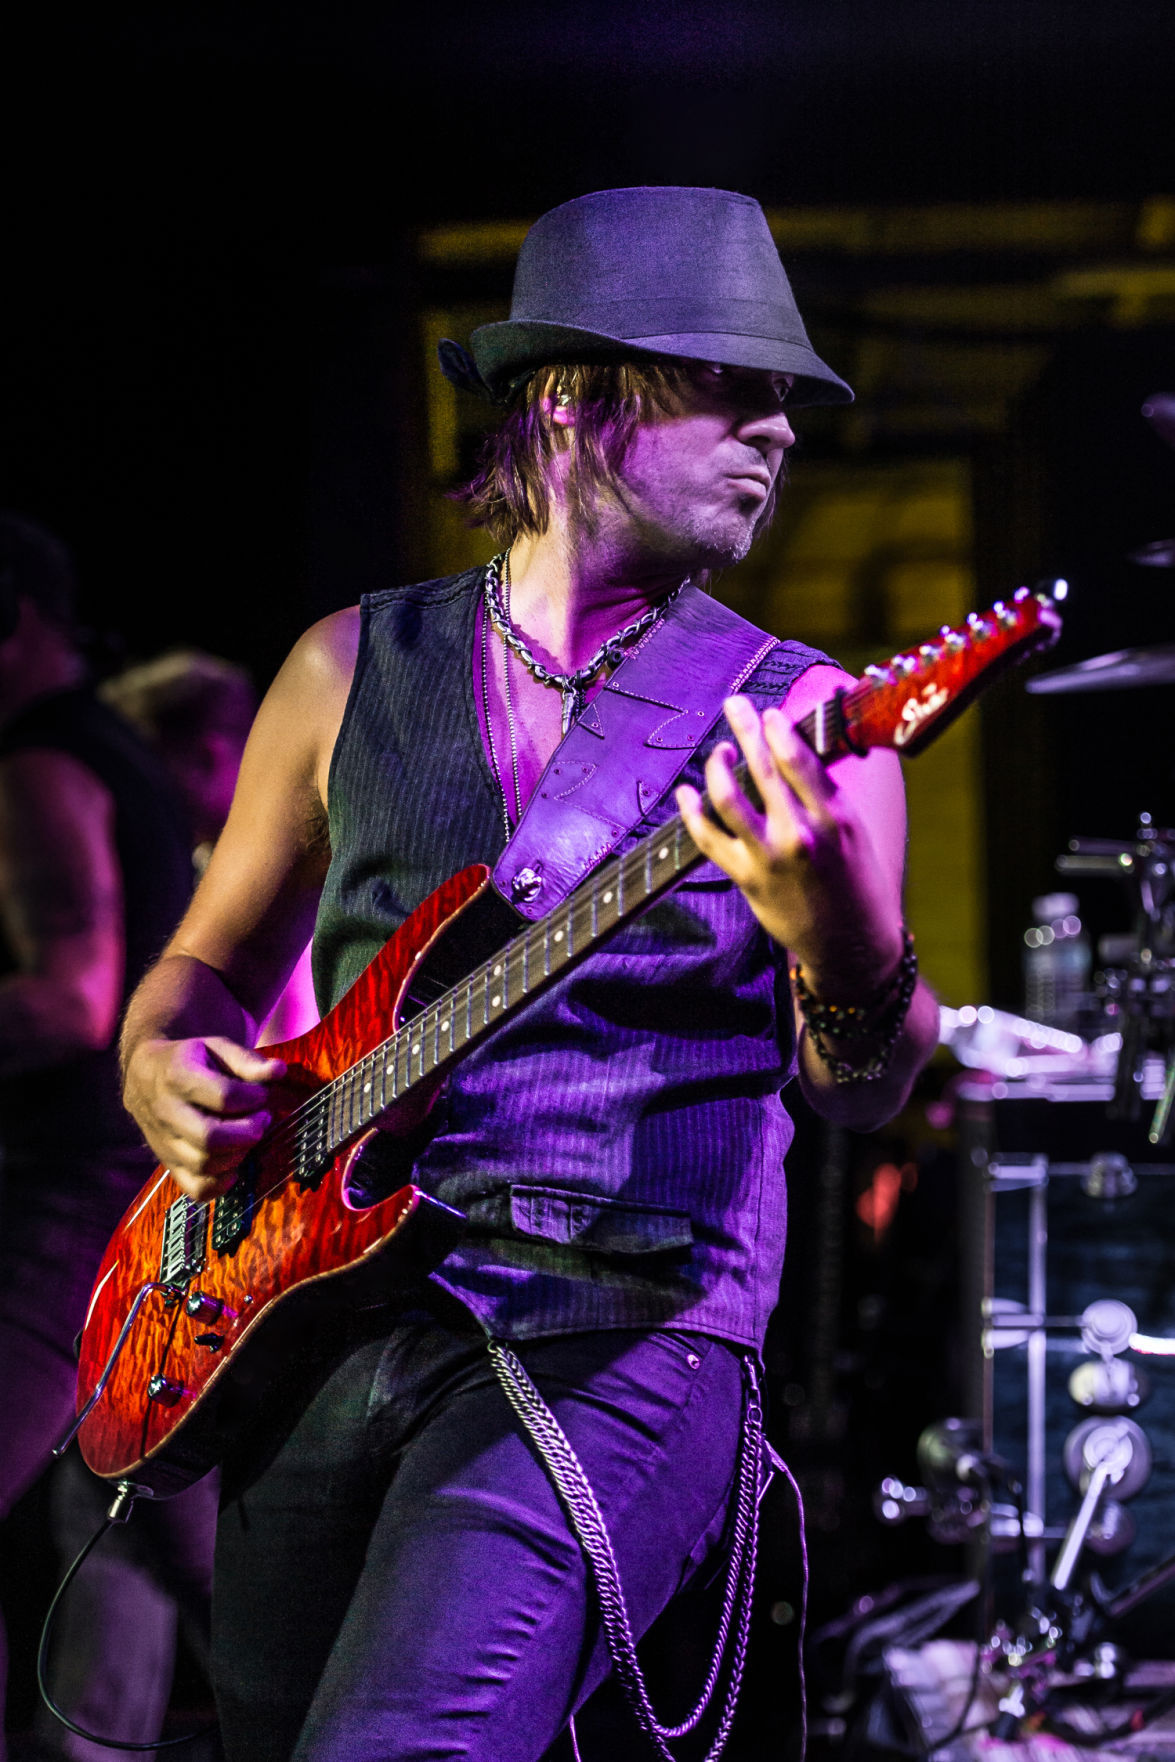 Guitarist Andy Wood Steps Out Of The Shadows For Bijou Show